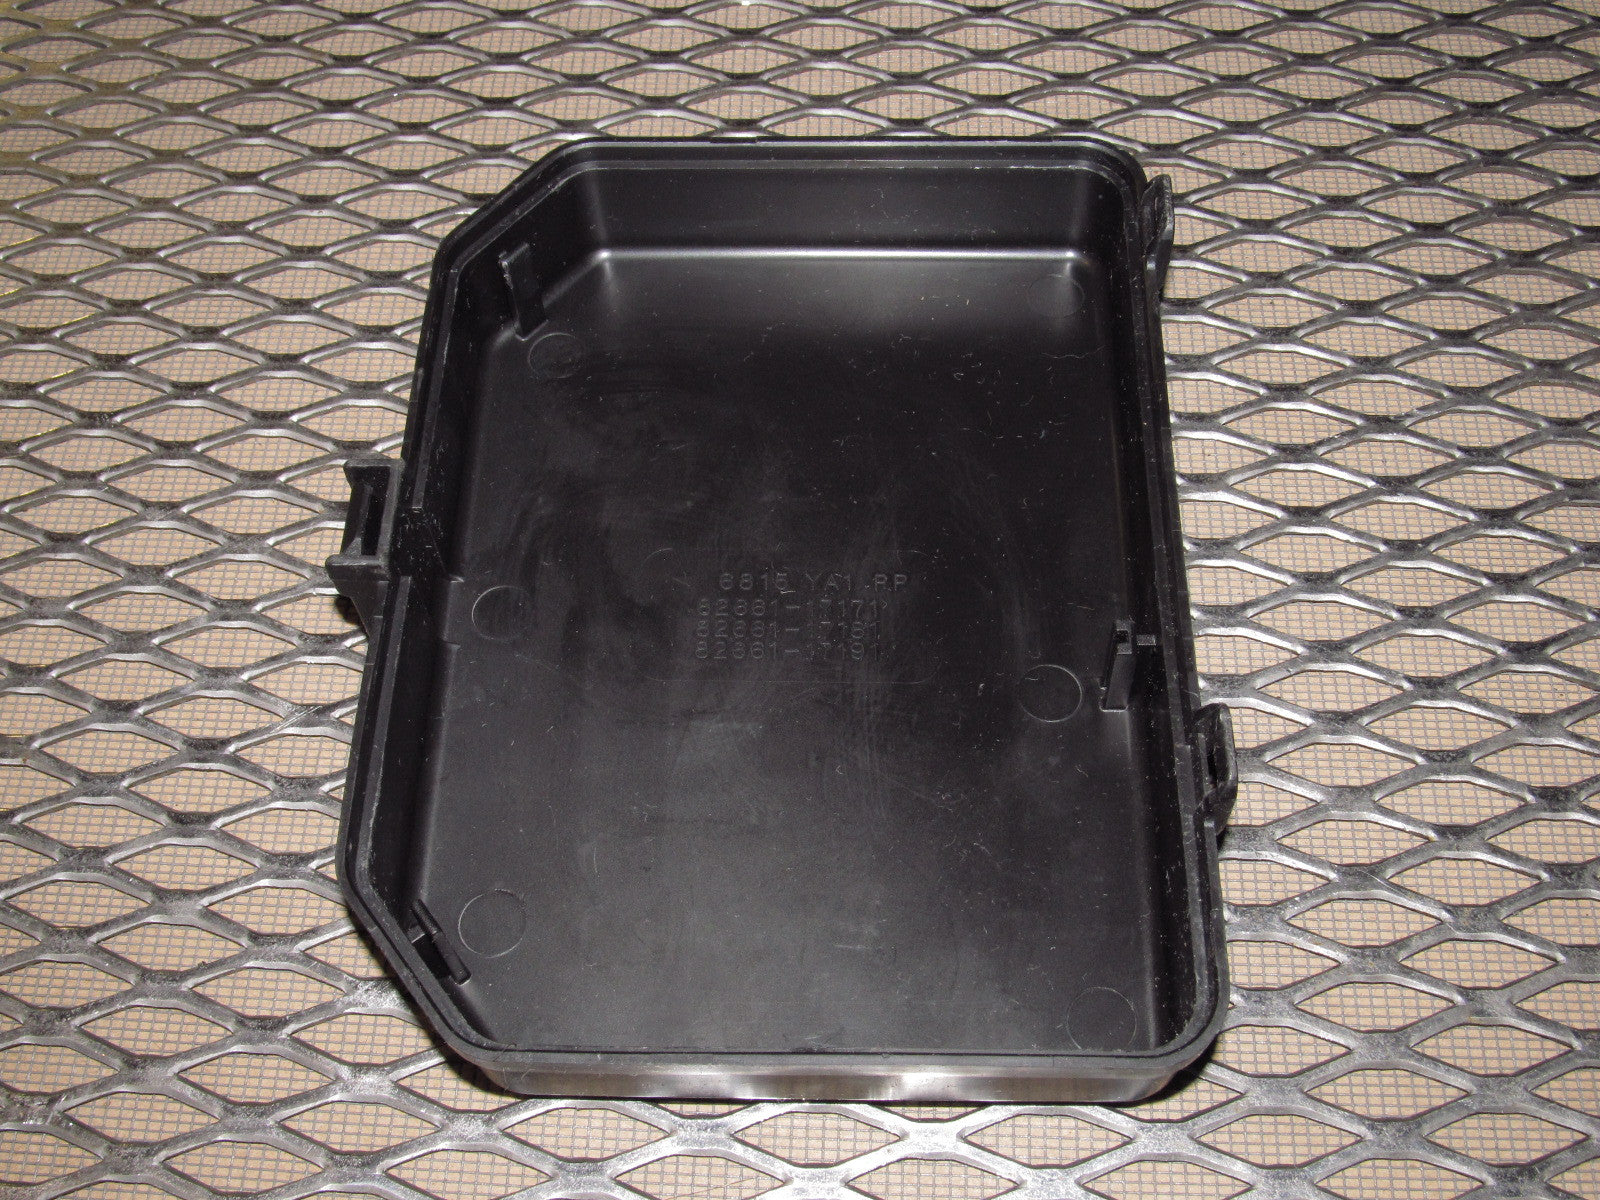 1991 Toyota Mr2 Fuse Box Reinvent Your Wiring Diagram Camry Location 91 92 93 94 95 Oem Hood Cover Autopartone Com Rh